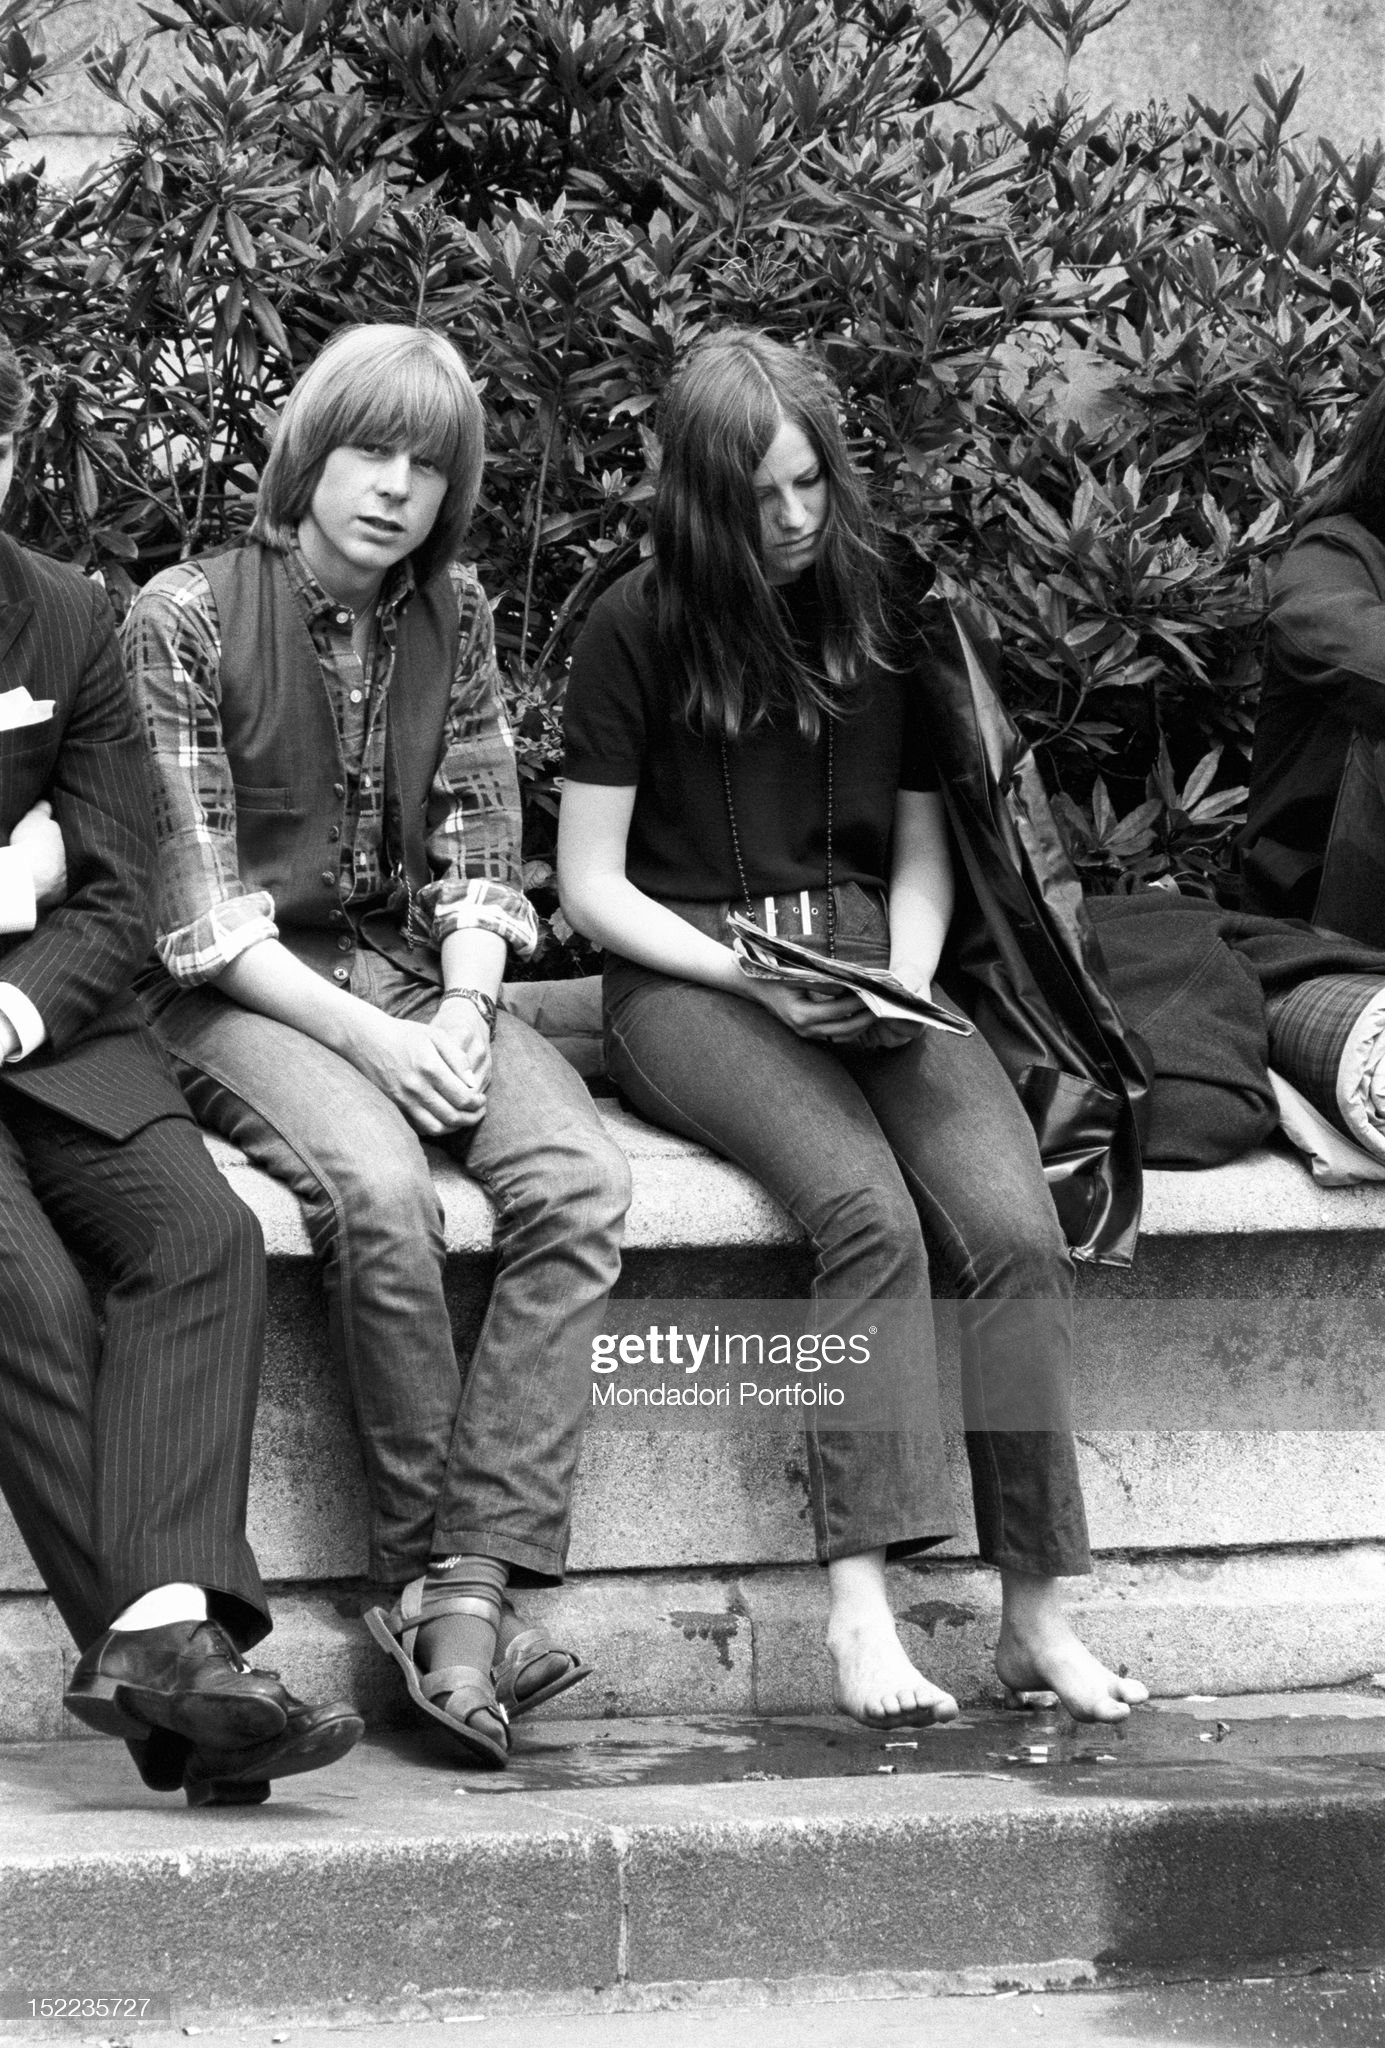 https://media.gettyimages.com/photos/british-boy-and-a-british-girl-sitting-barefoot-on-a-bench-london-picture-id152235727?s=2048x2048